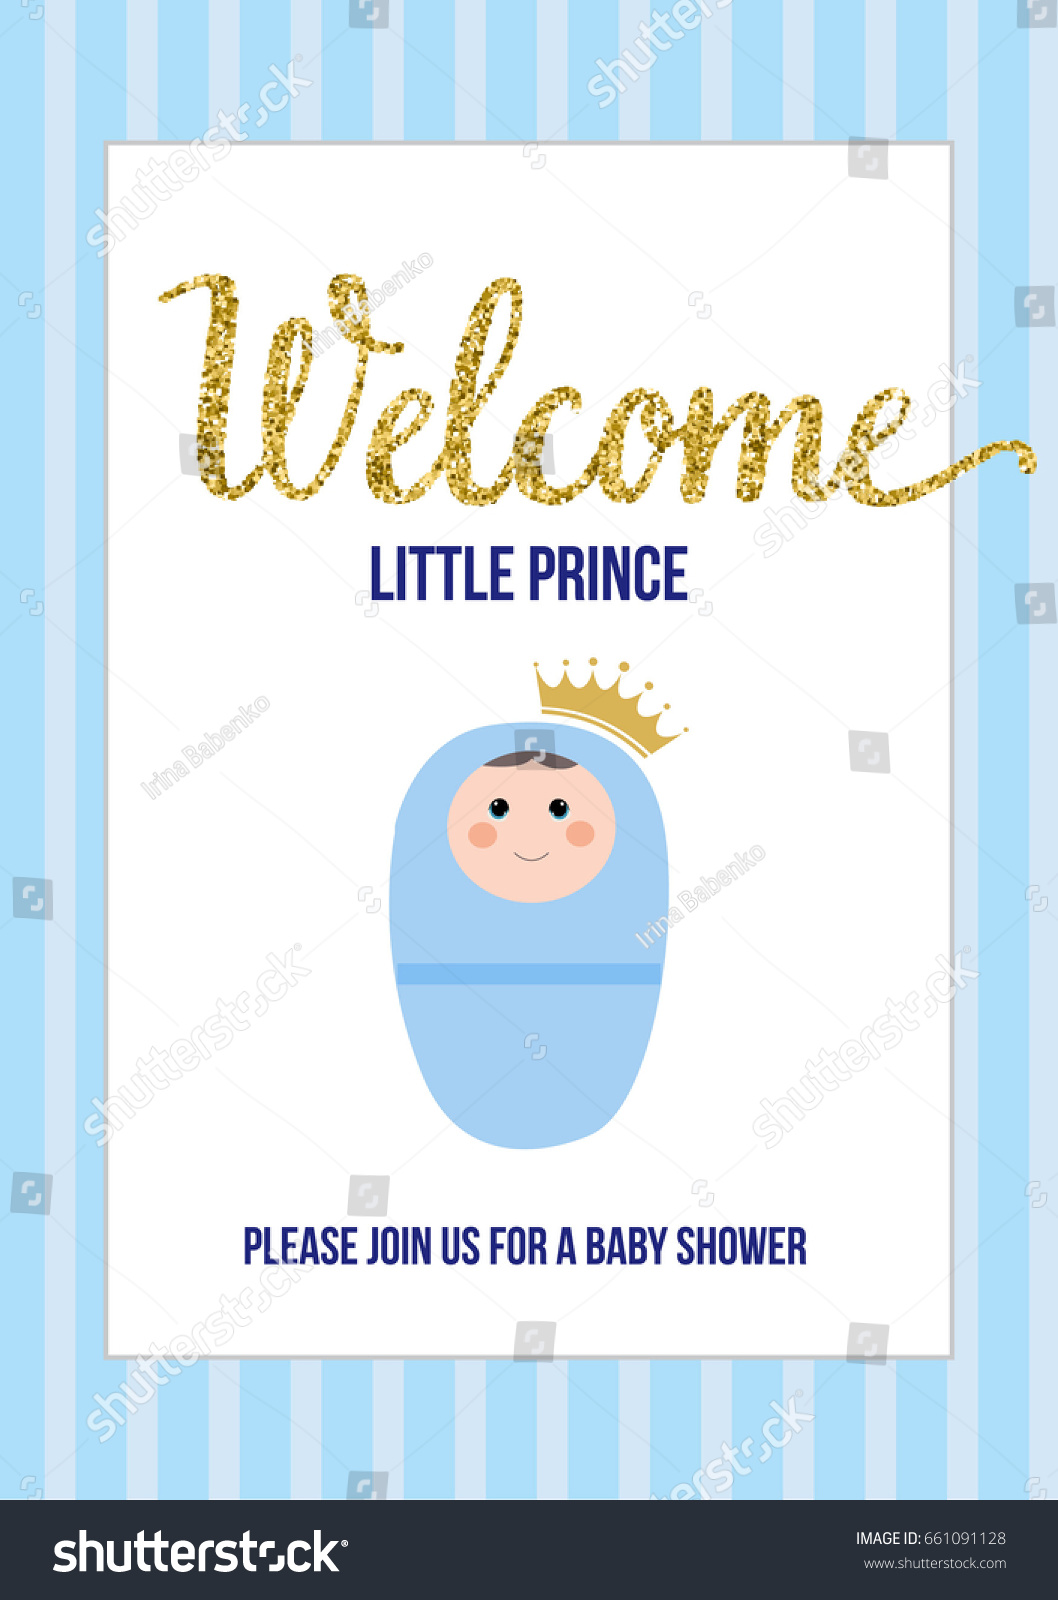 Welcome Little Prince Baby Shower Invitation Stock Vector 661091128 ...